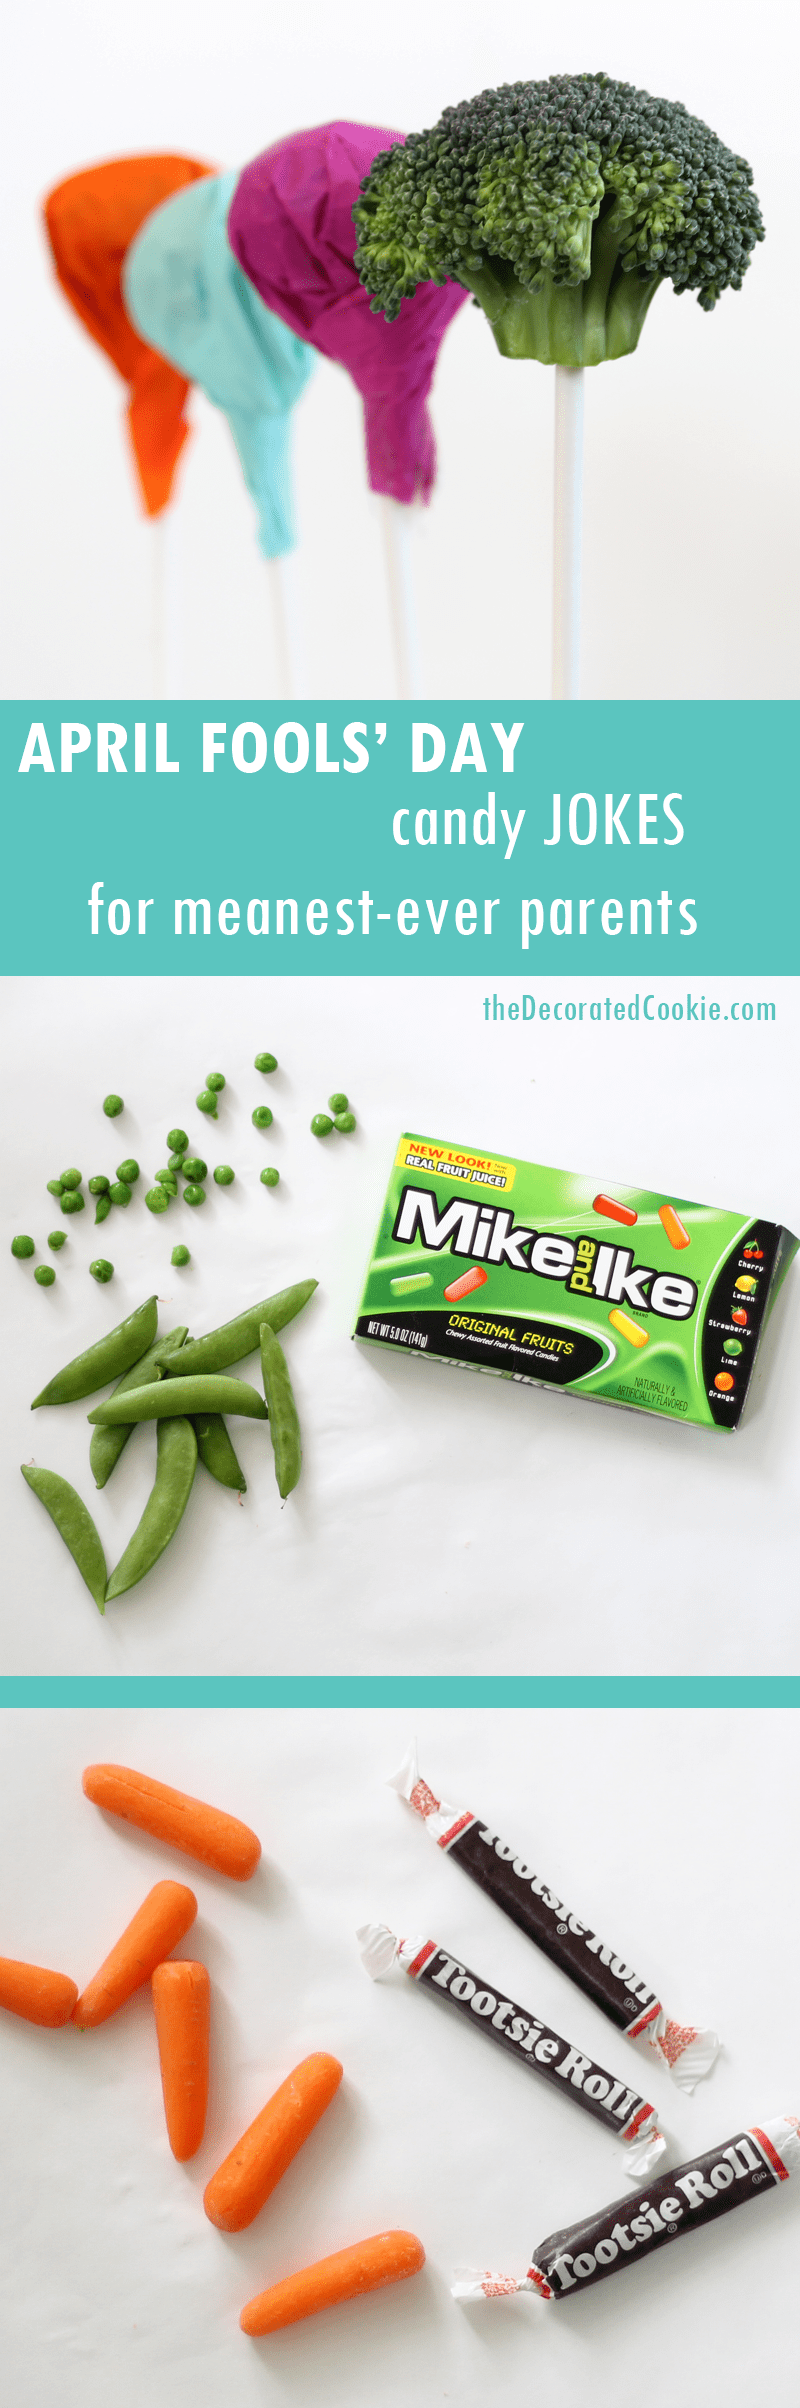 April Fools Day Candy Jokes With Hidden Vegetables April Fools Pranks Pranks April Fools Day